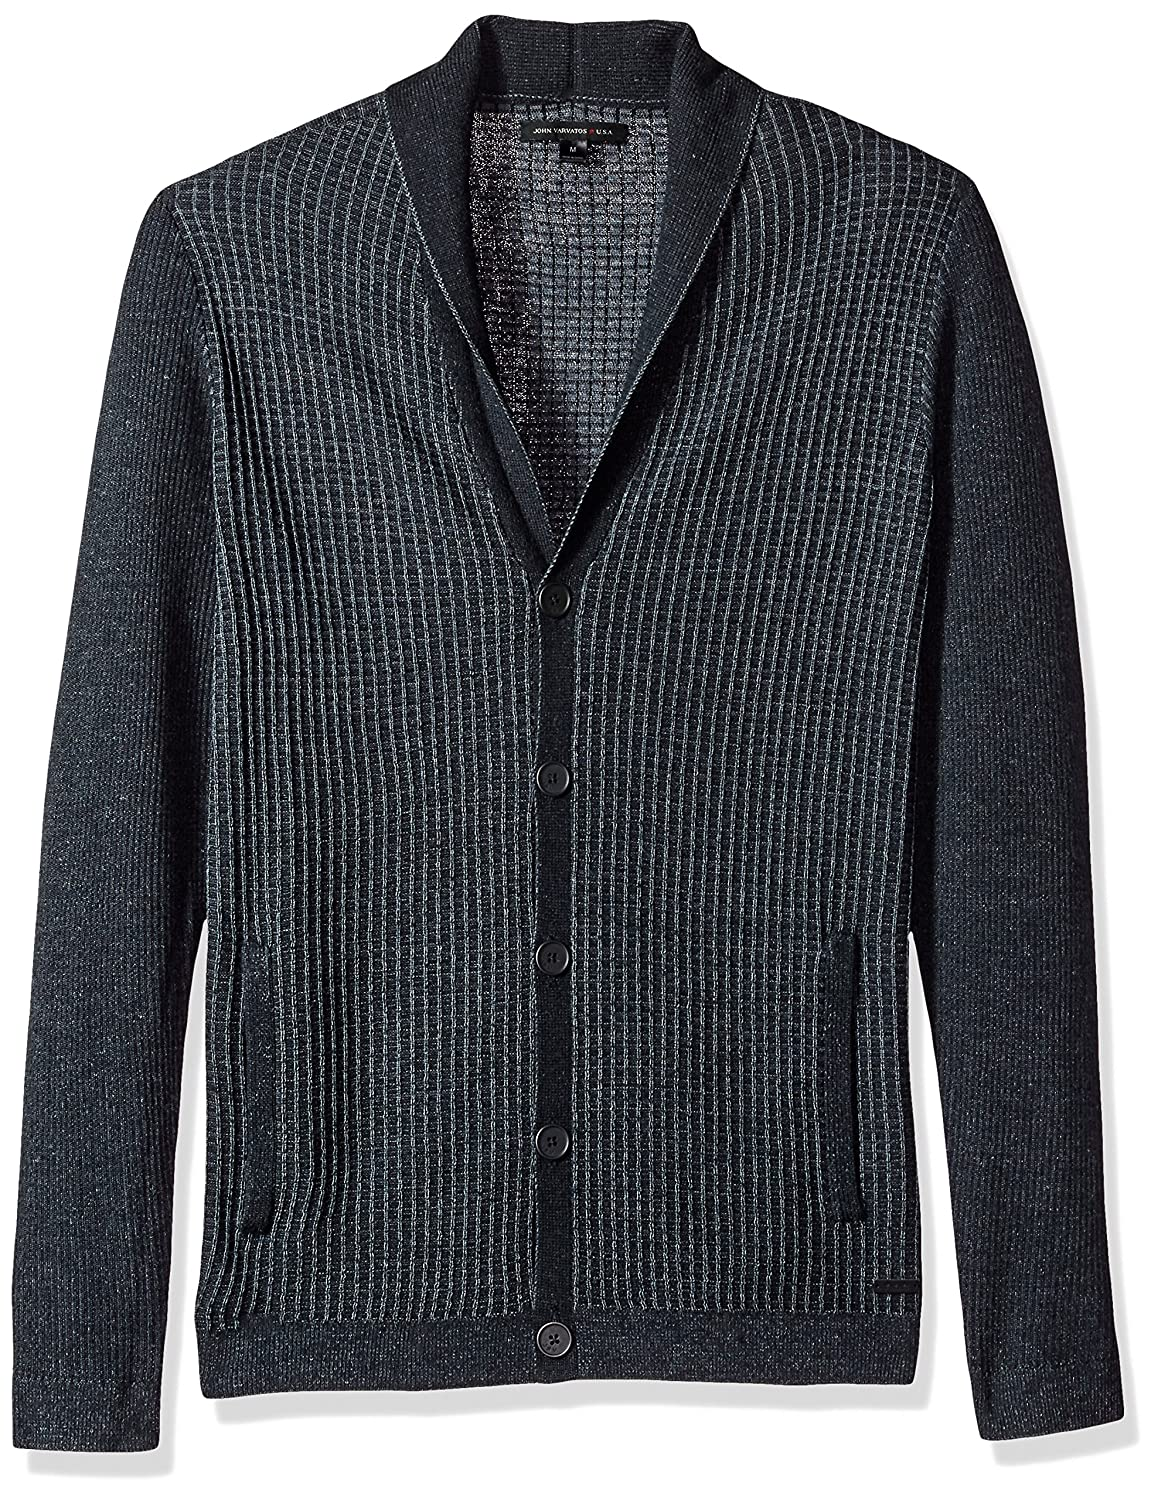 John Varvatos Men's Shawl Collar Cardigan Y1627T3BAPP9B